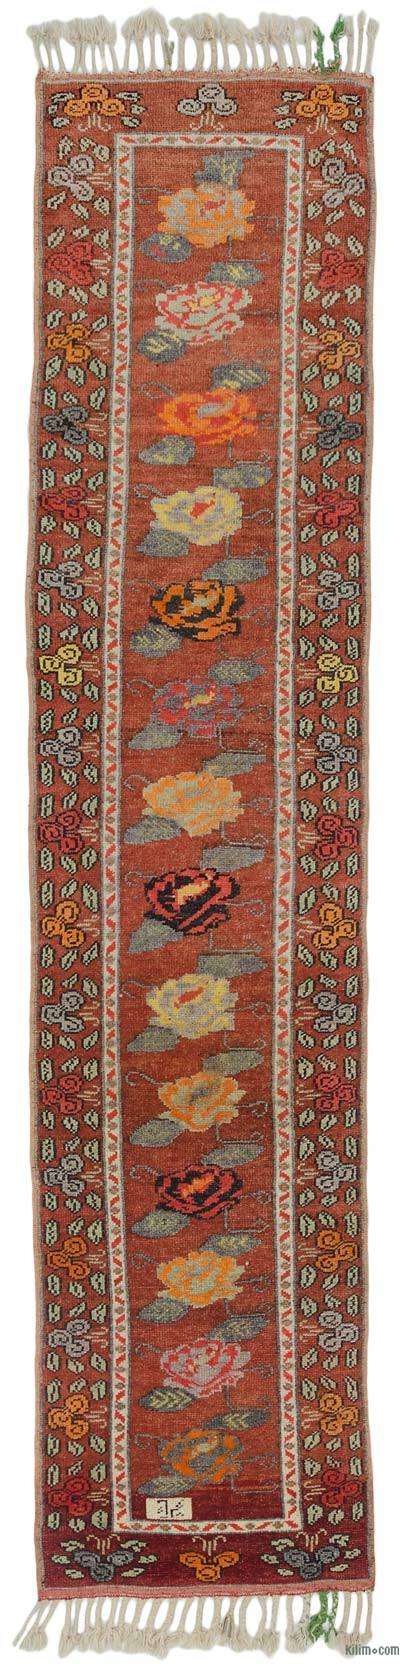 "Vintage Turkish Runner Rug - 2' 11"" x 13' 1"" (35 in. x 157 in.)"